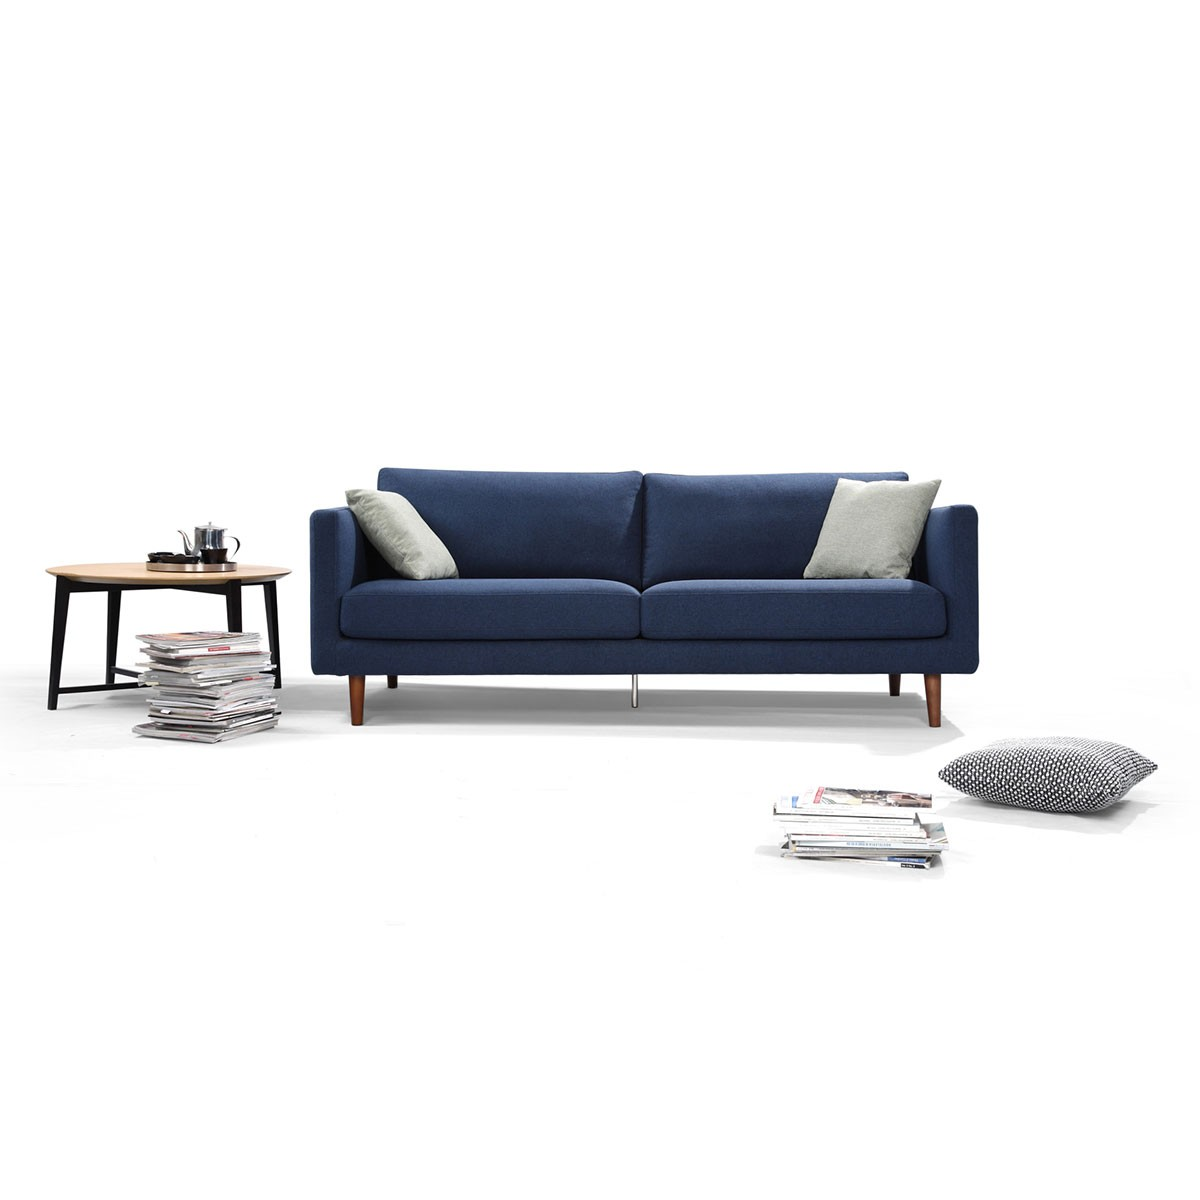 Fabric Loveseat Sofa with Pillows - Blue (BO-617-2S)